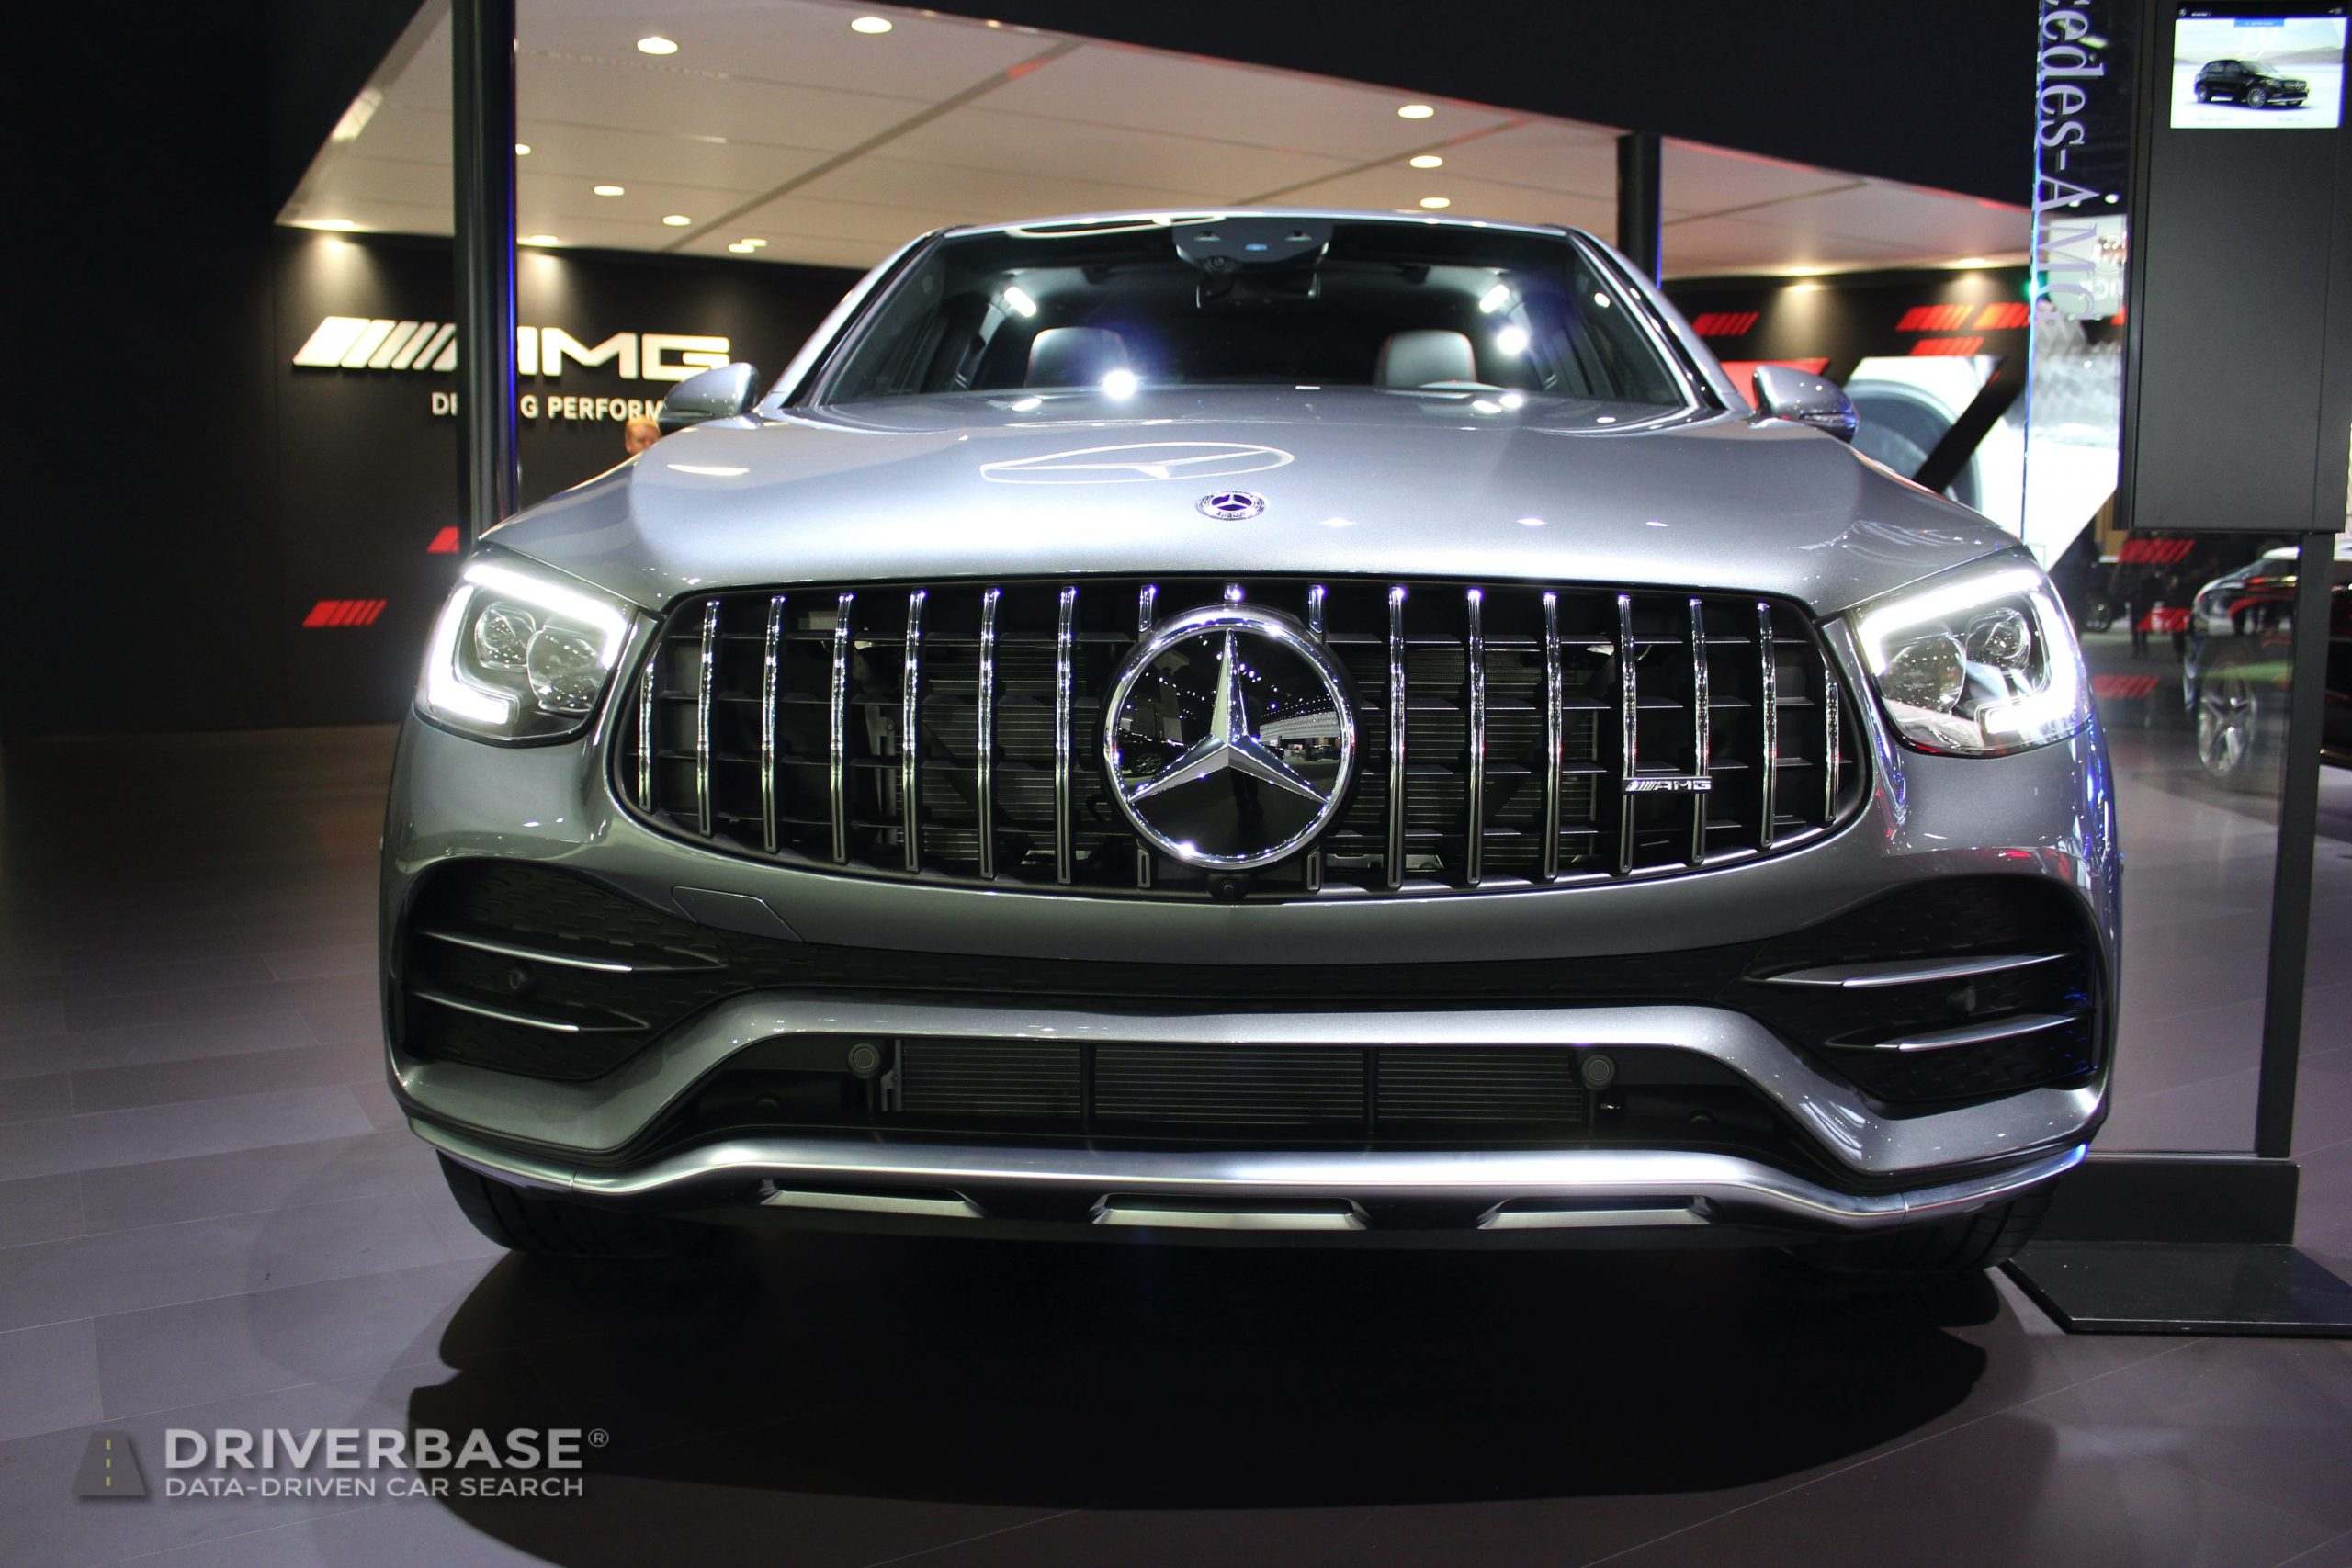 2020 Mercedes-Benz AMG GLC 43 Coupe at the 2019 Los Angeles Auto Show